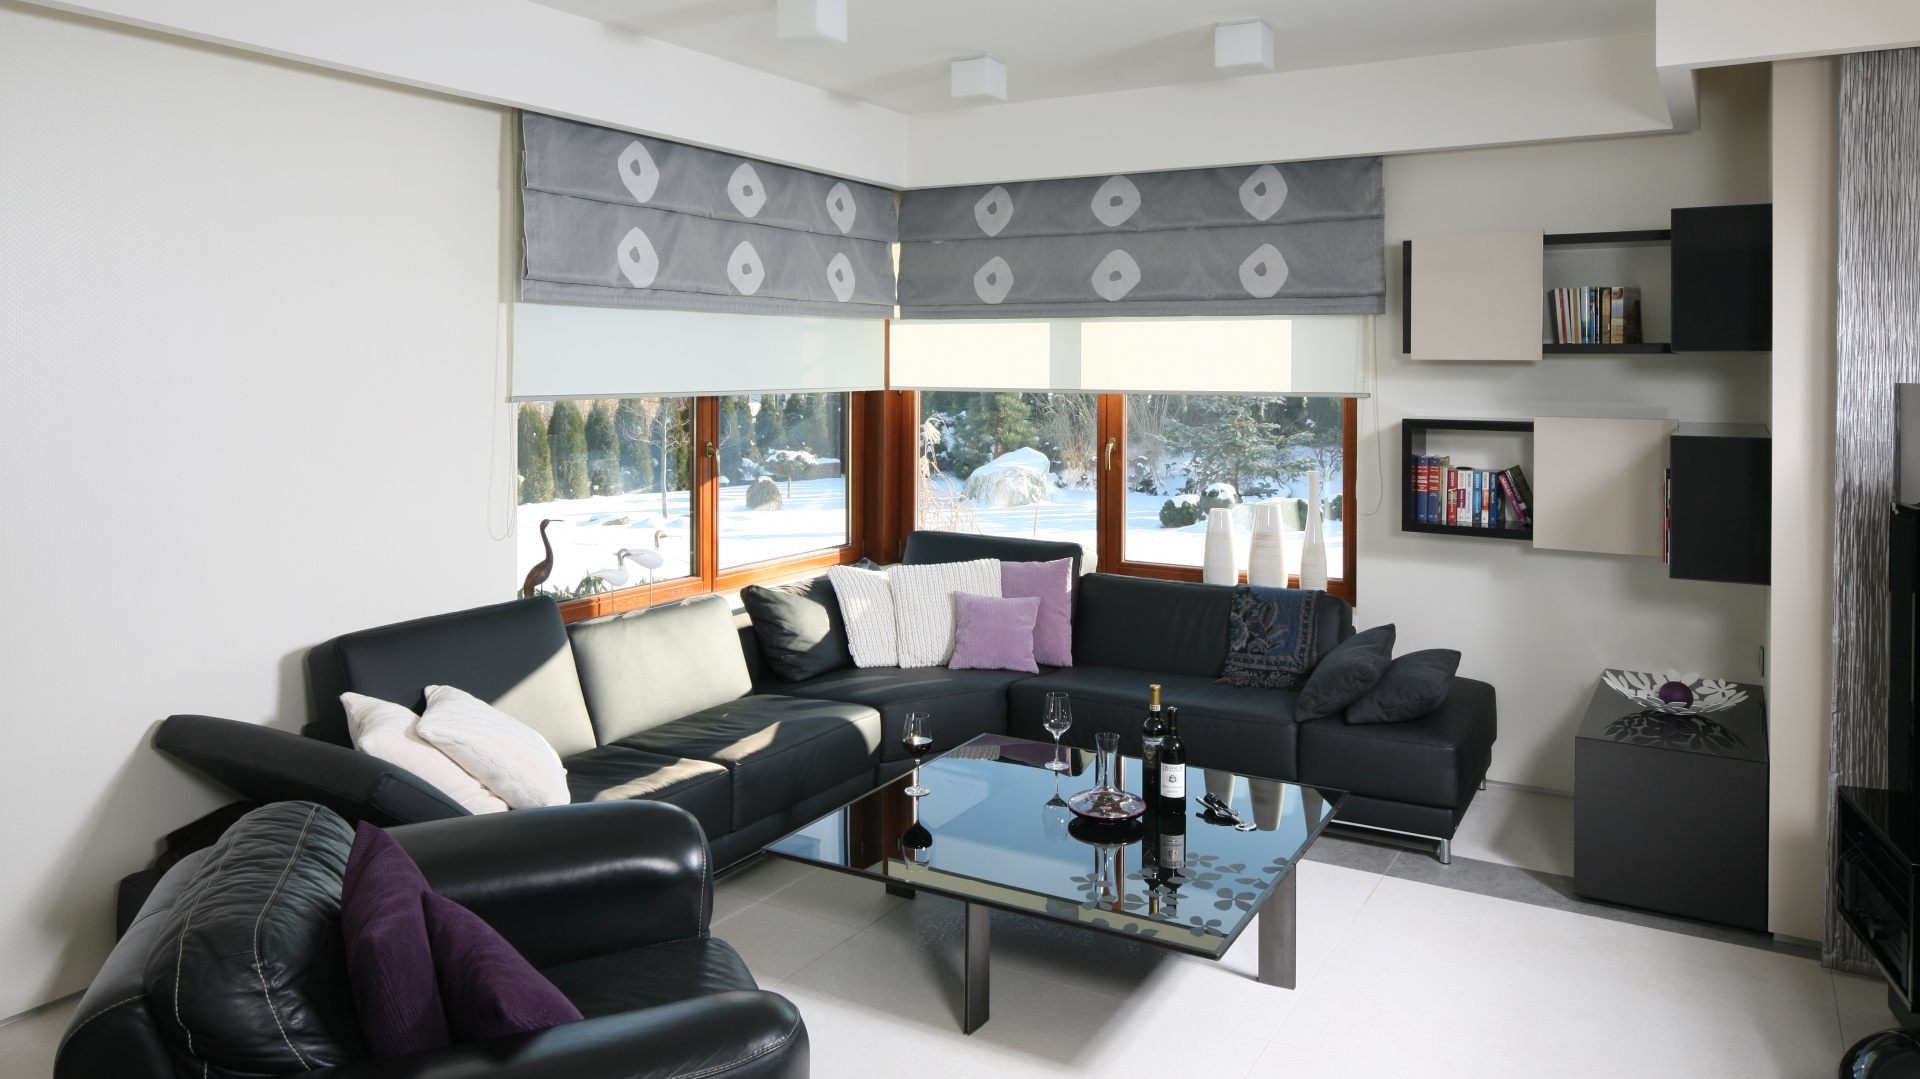 Gray Roman blinds with white pattern